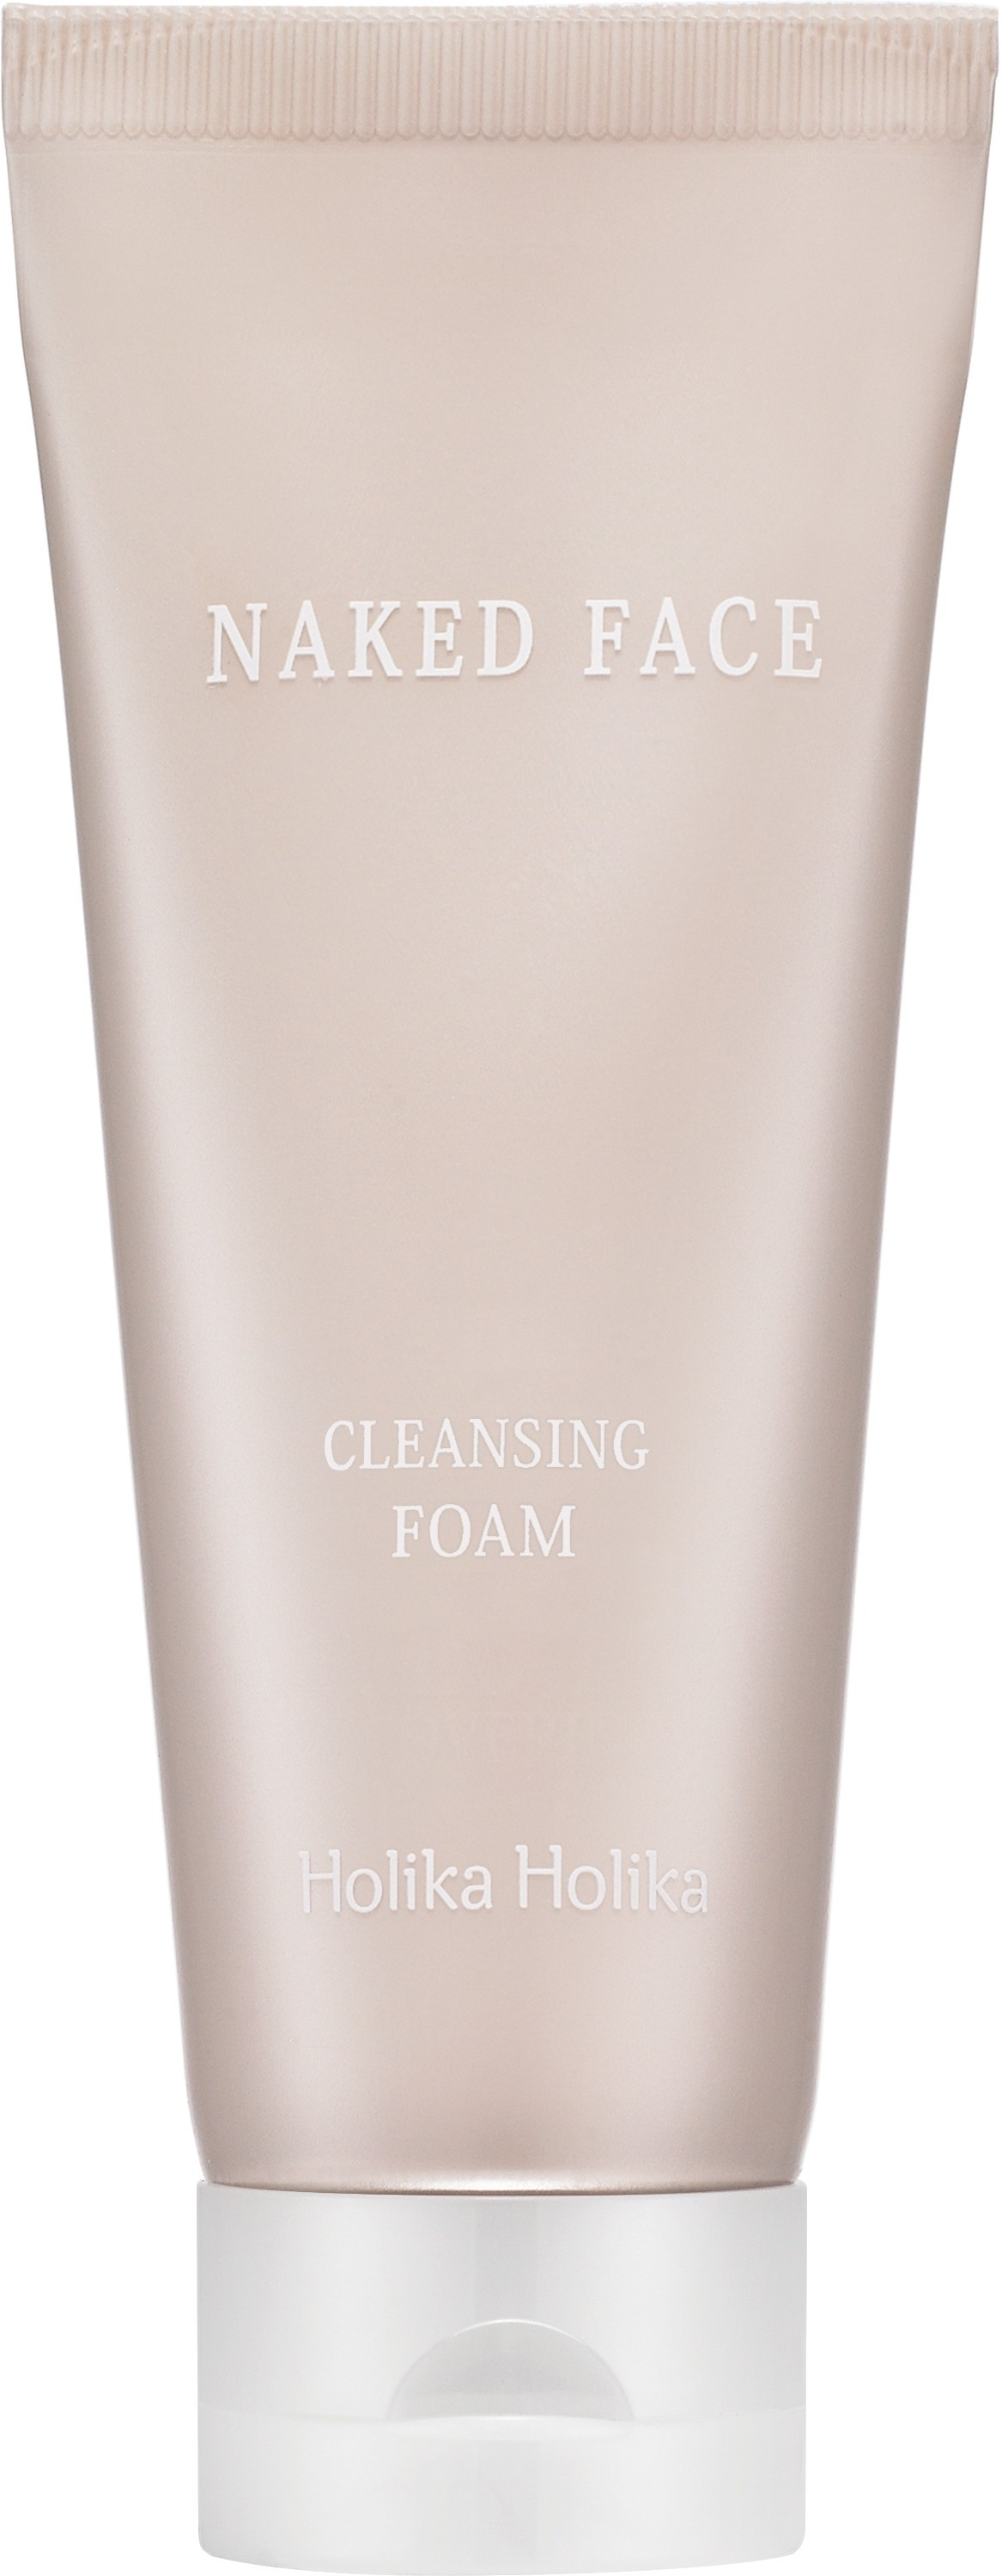 Holika Holika Naked Face Cleansing Foam фото